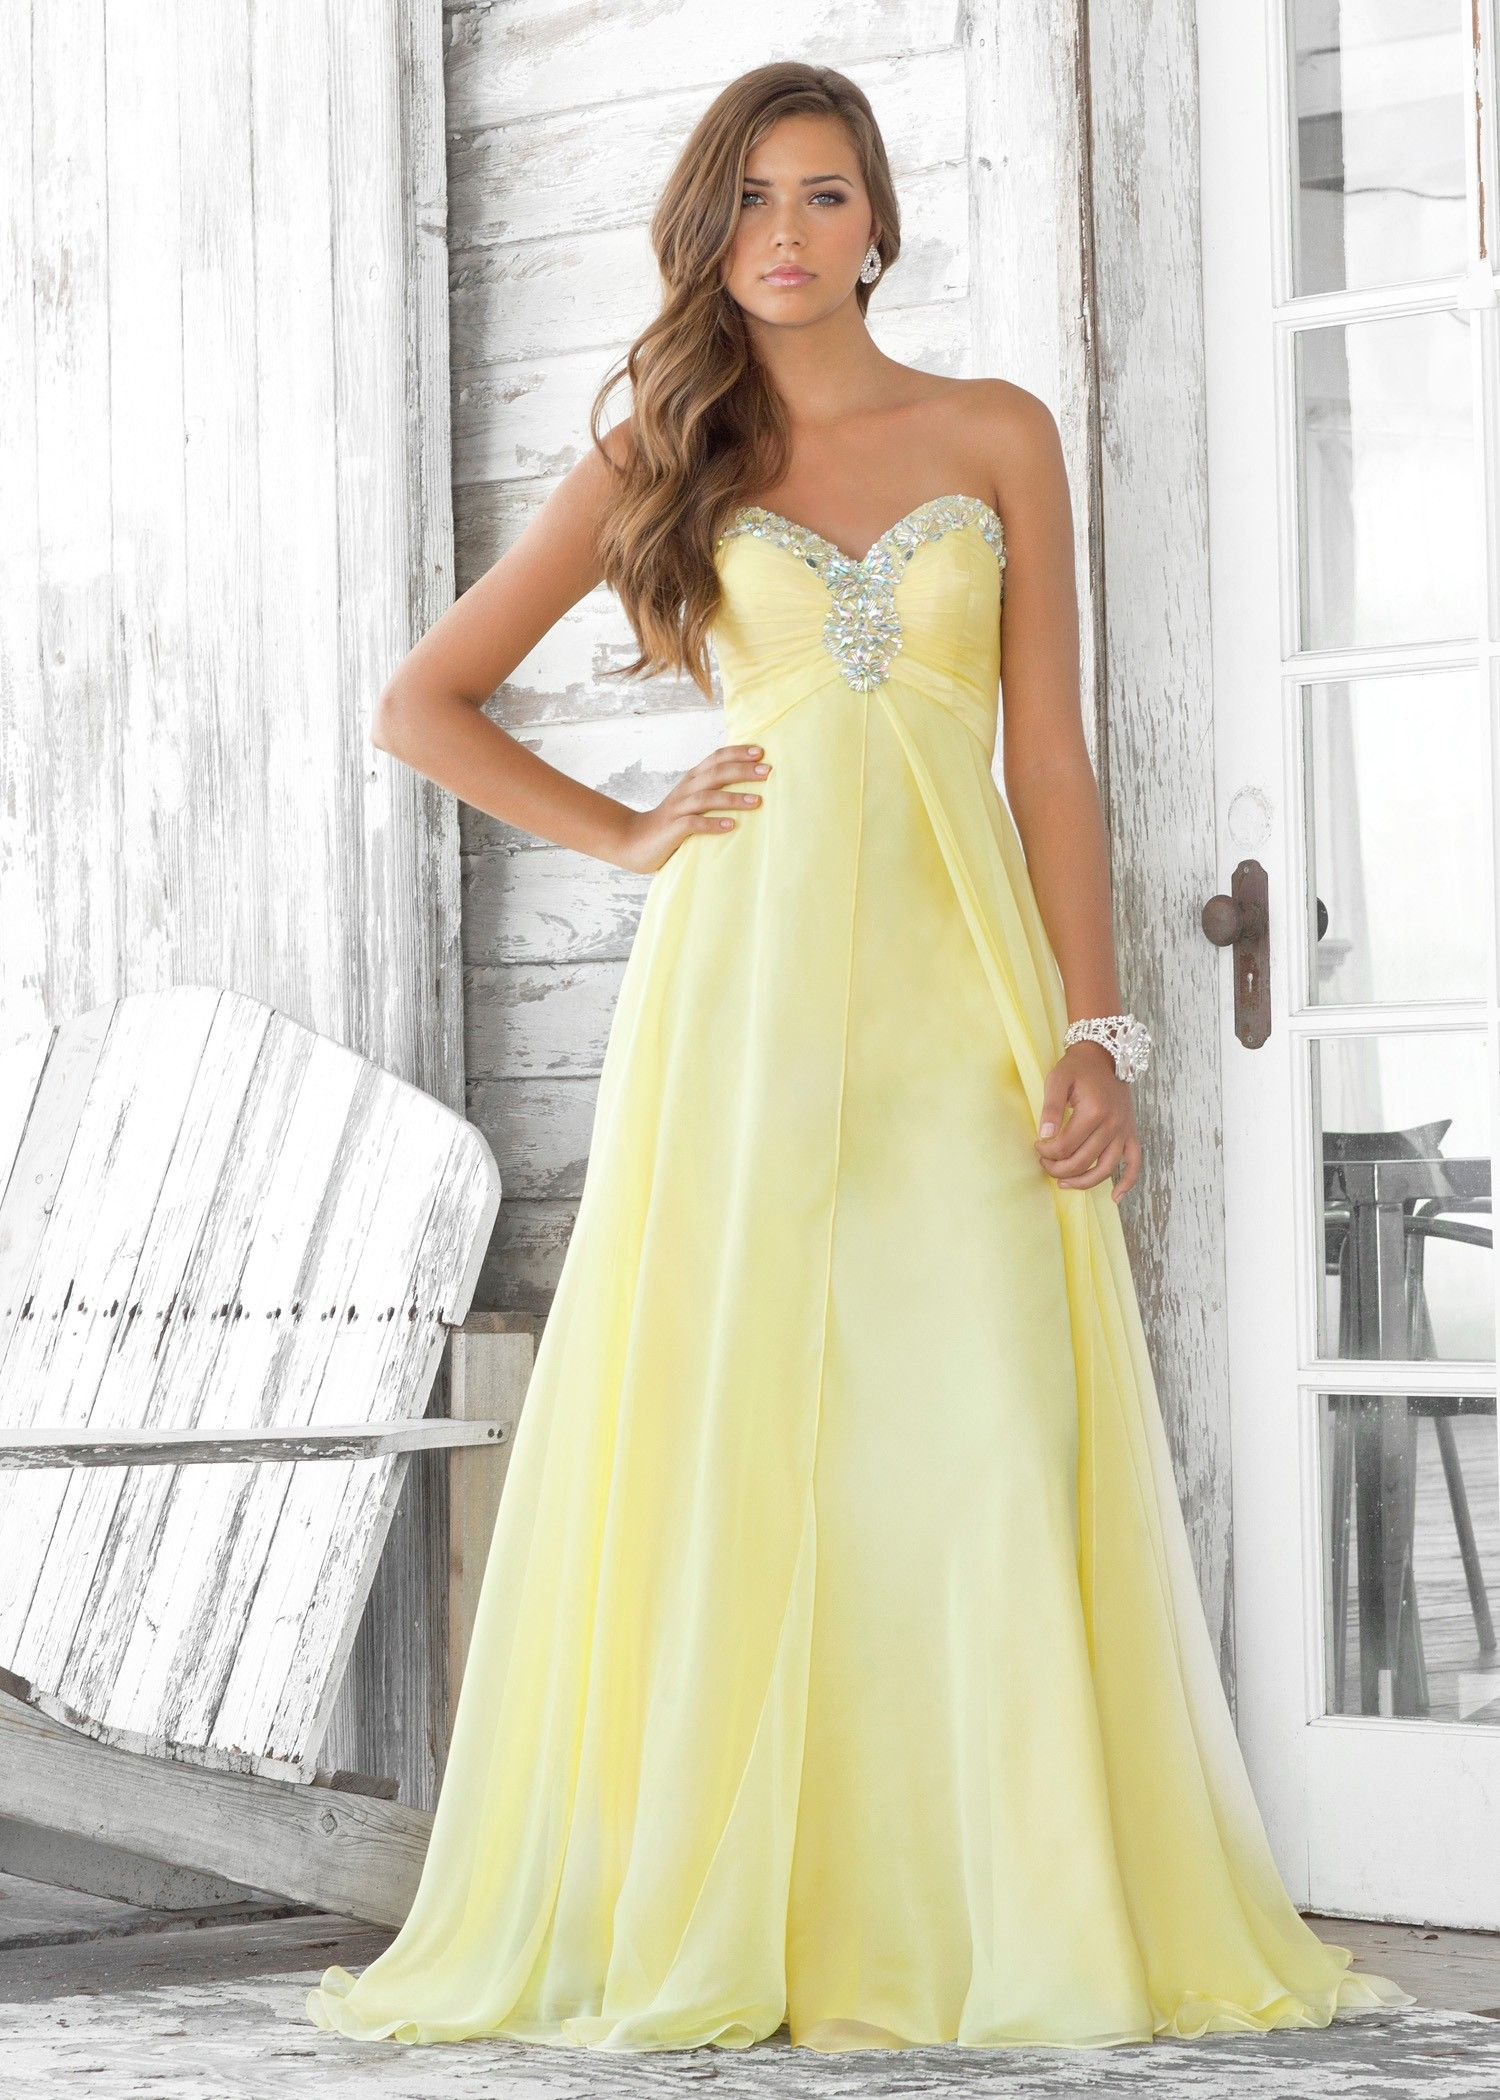 Flowy yellow strapless dress - Blush Prom 9388  2013 Prom ...